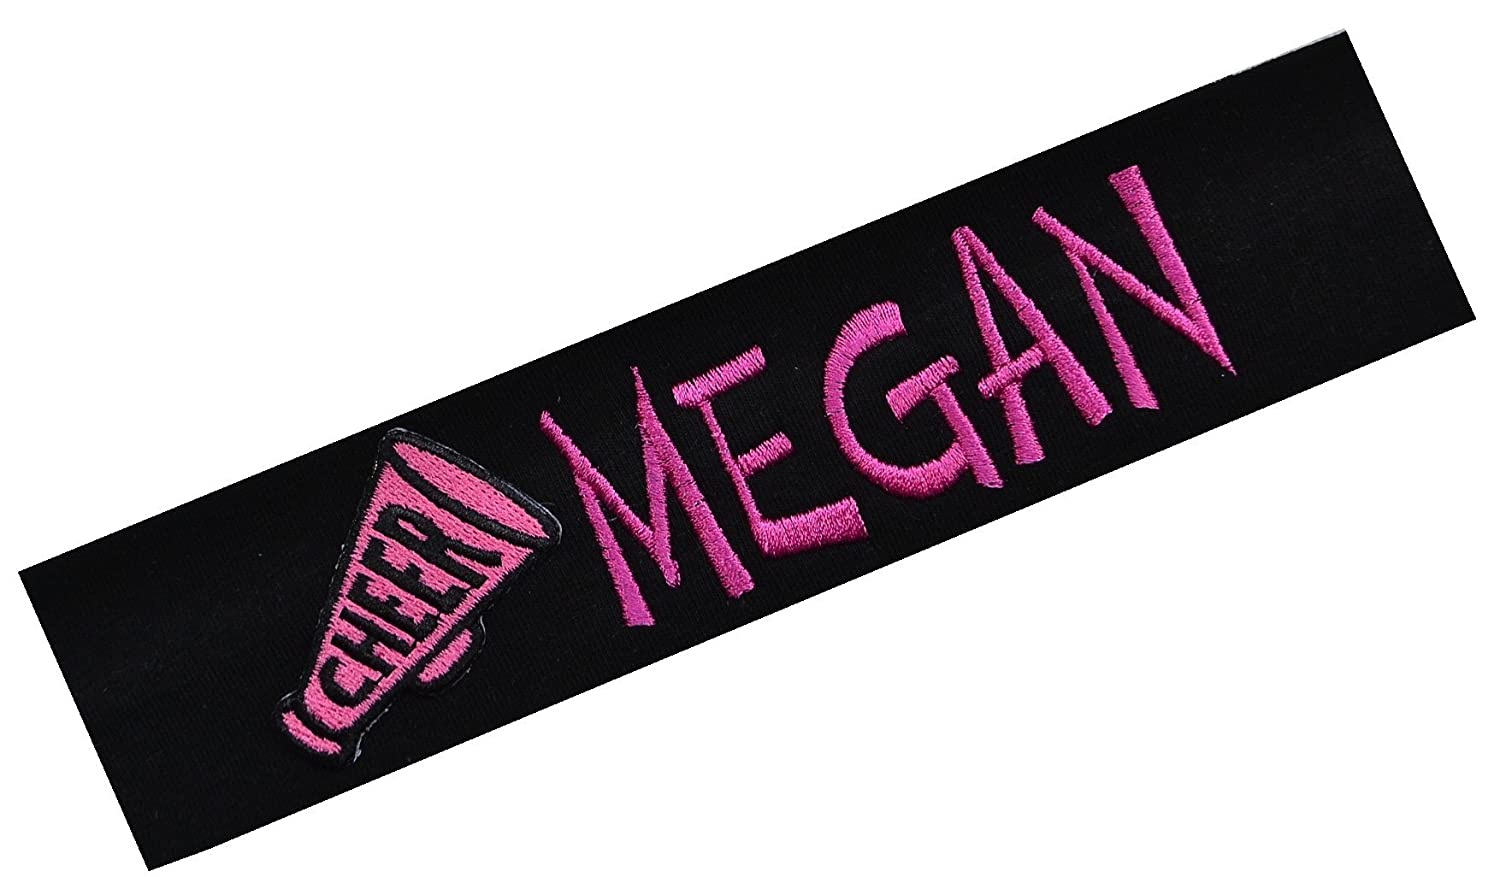 Personalized Embroidered Cheerleading Cotton Stretch Headband by Funny Girl Designs - Your Custom Text CHEEREMBROIDEREDHB-1